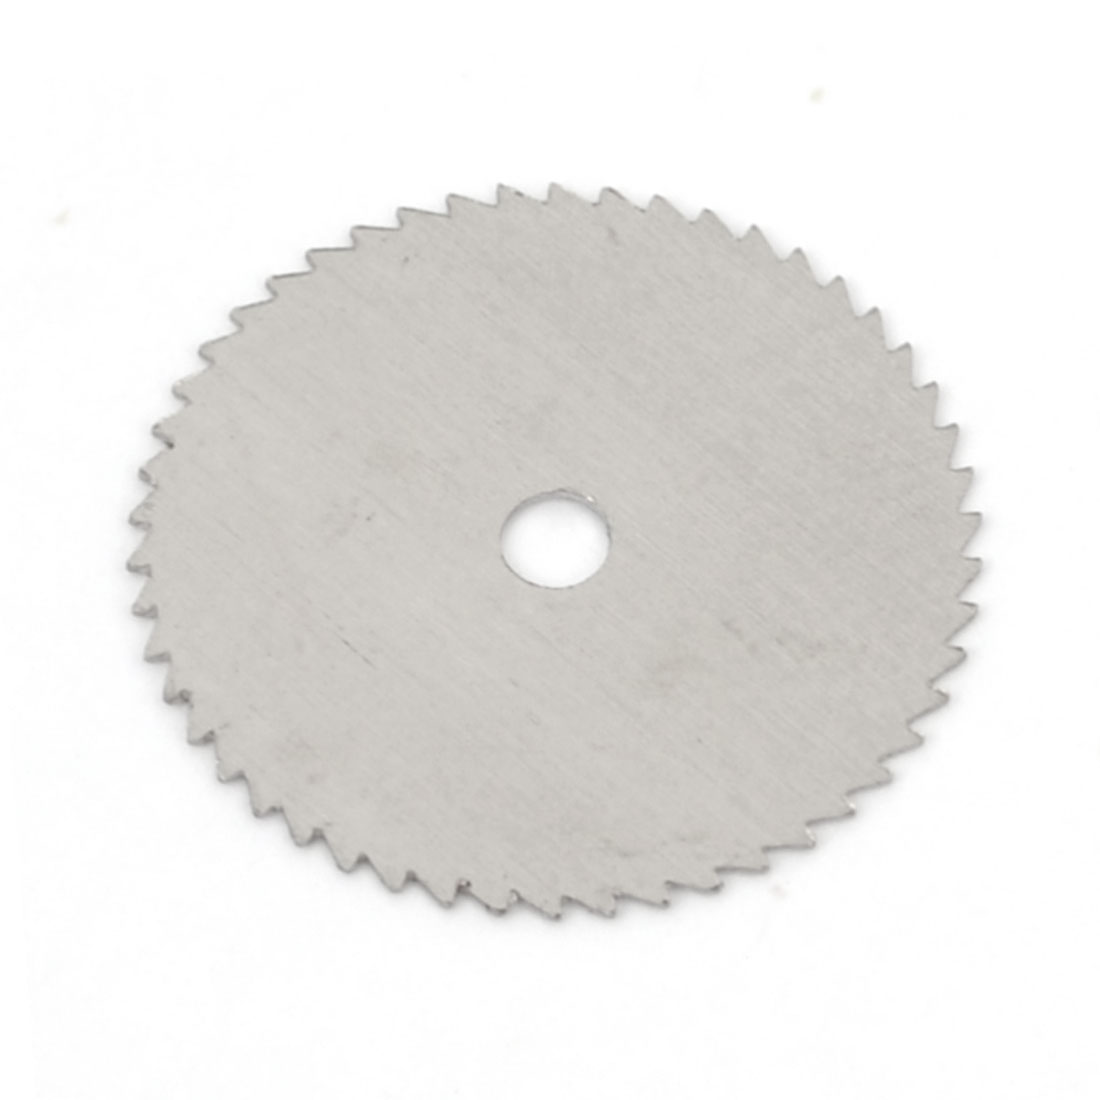 Silver Tone HSS Woodworking Circular 16mm Dia 2mm Arbor Hole Diameter 0.35mm Thickness Nitride Slitting Saw Cutter